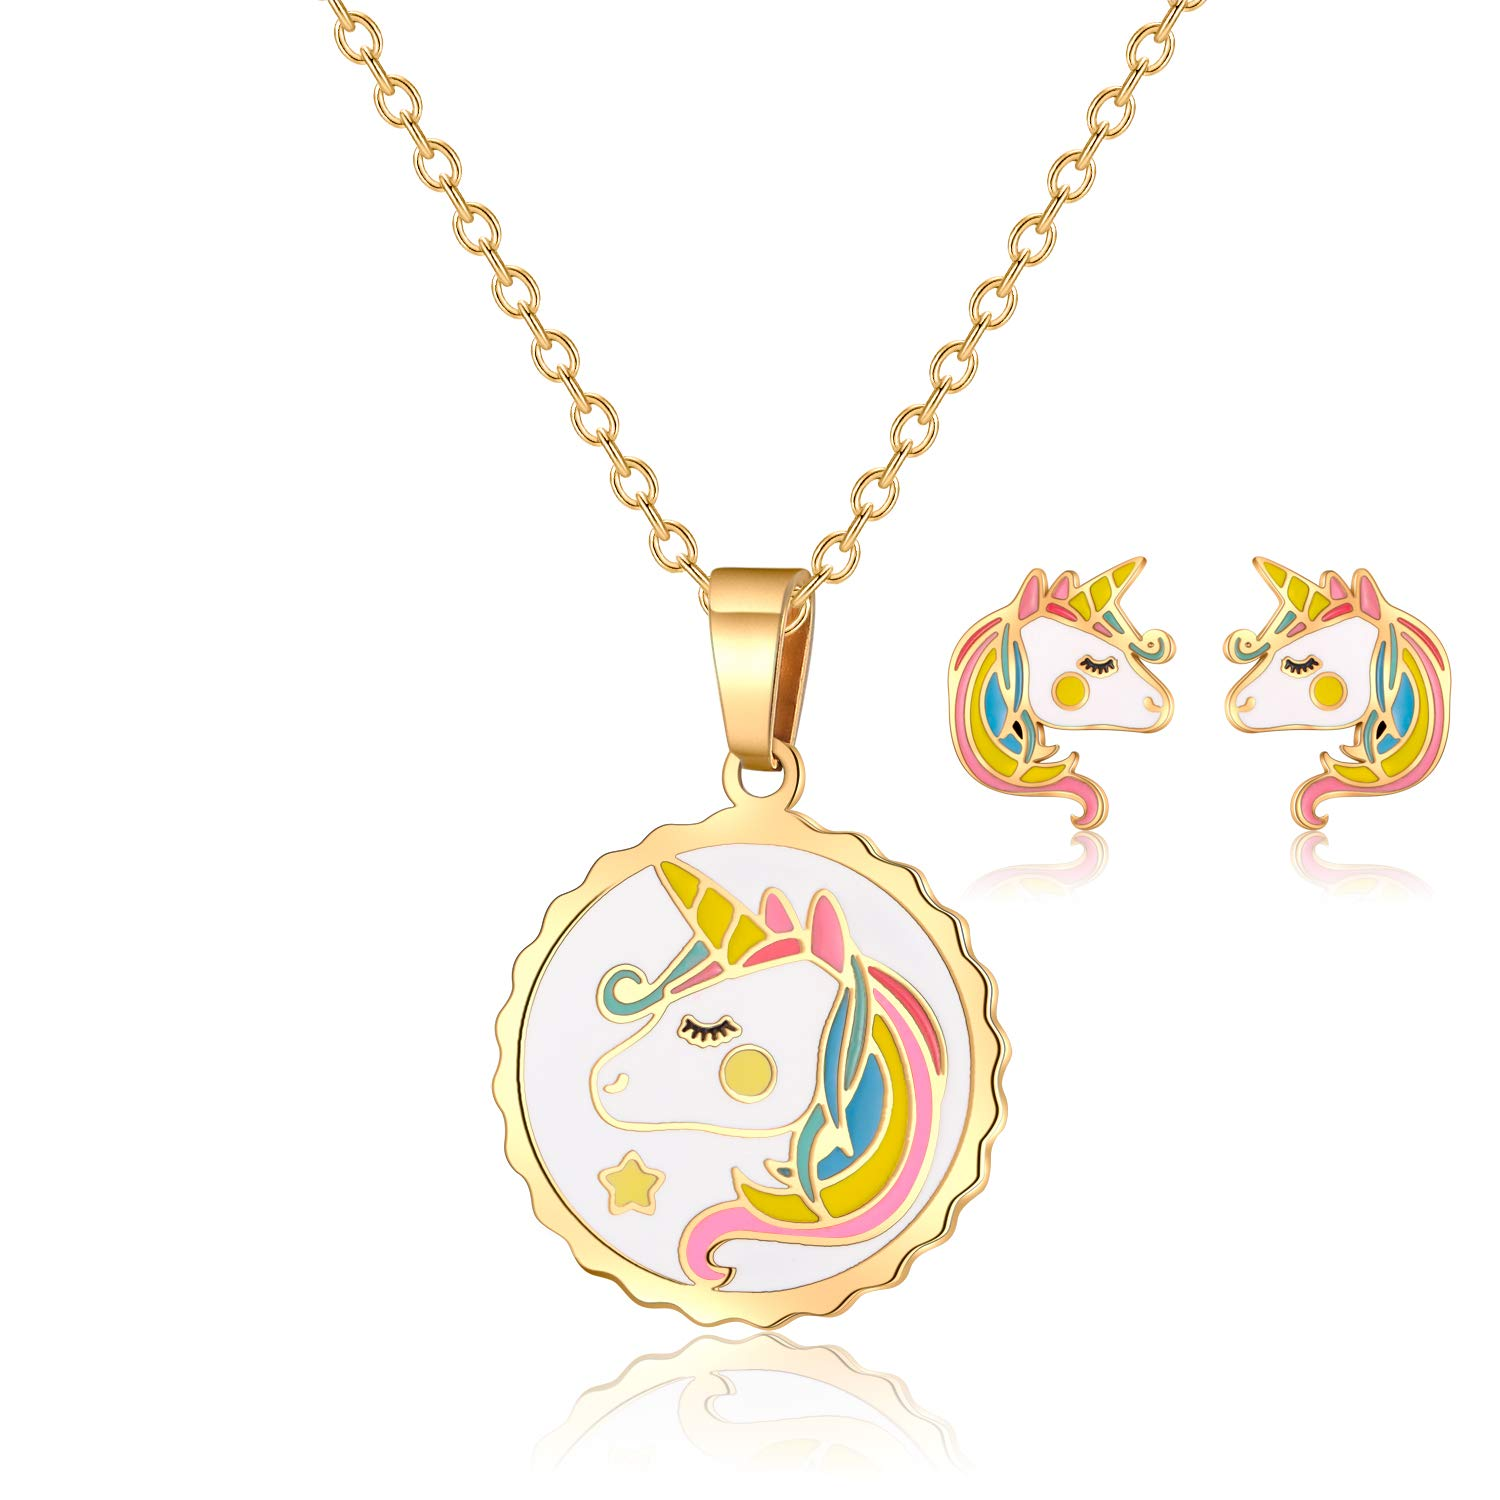 VINJEWELRY Kids Round Colorful Unicorn Pendant Necklace with Gold Chain and Girls Little Horse Earrings Studs Jewelry Set by VINJEWELRY